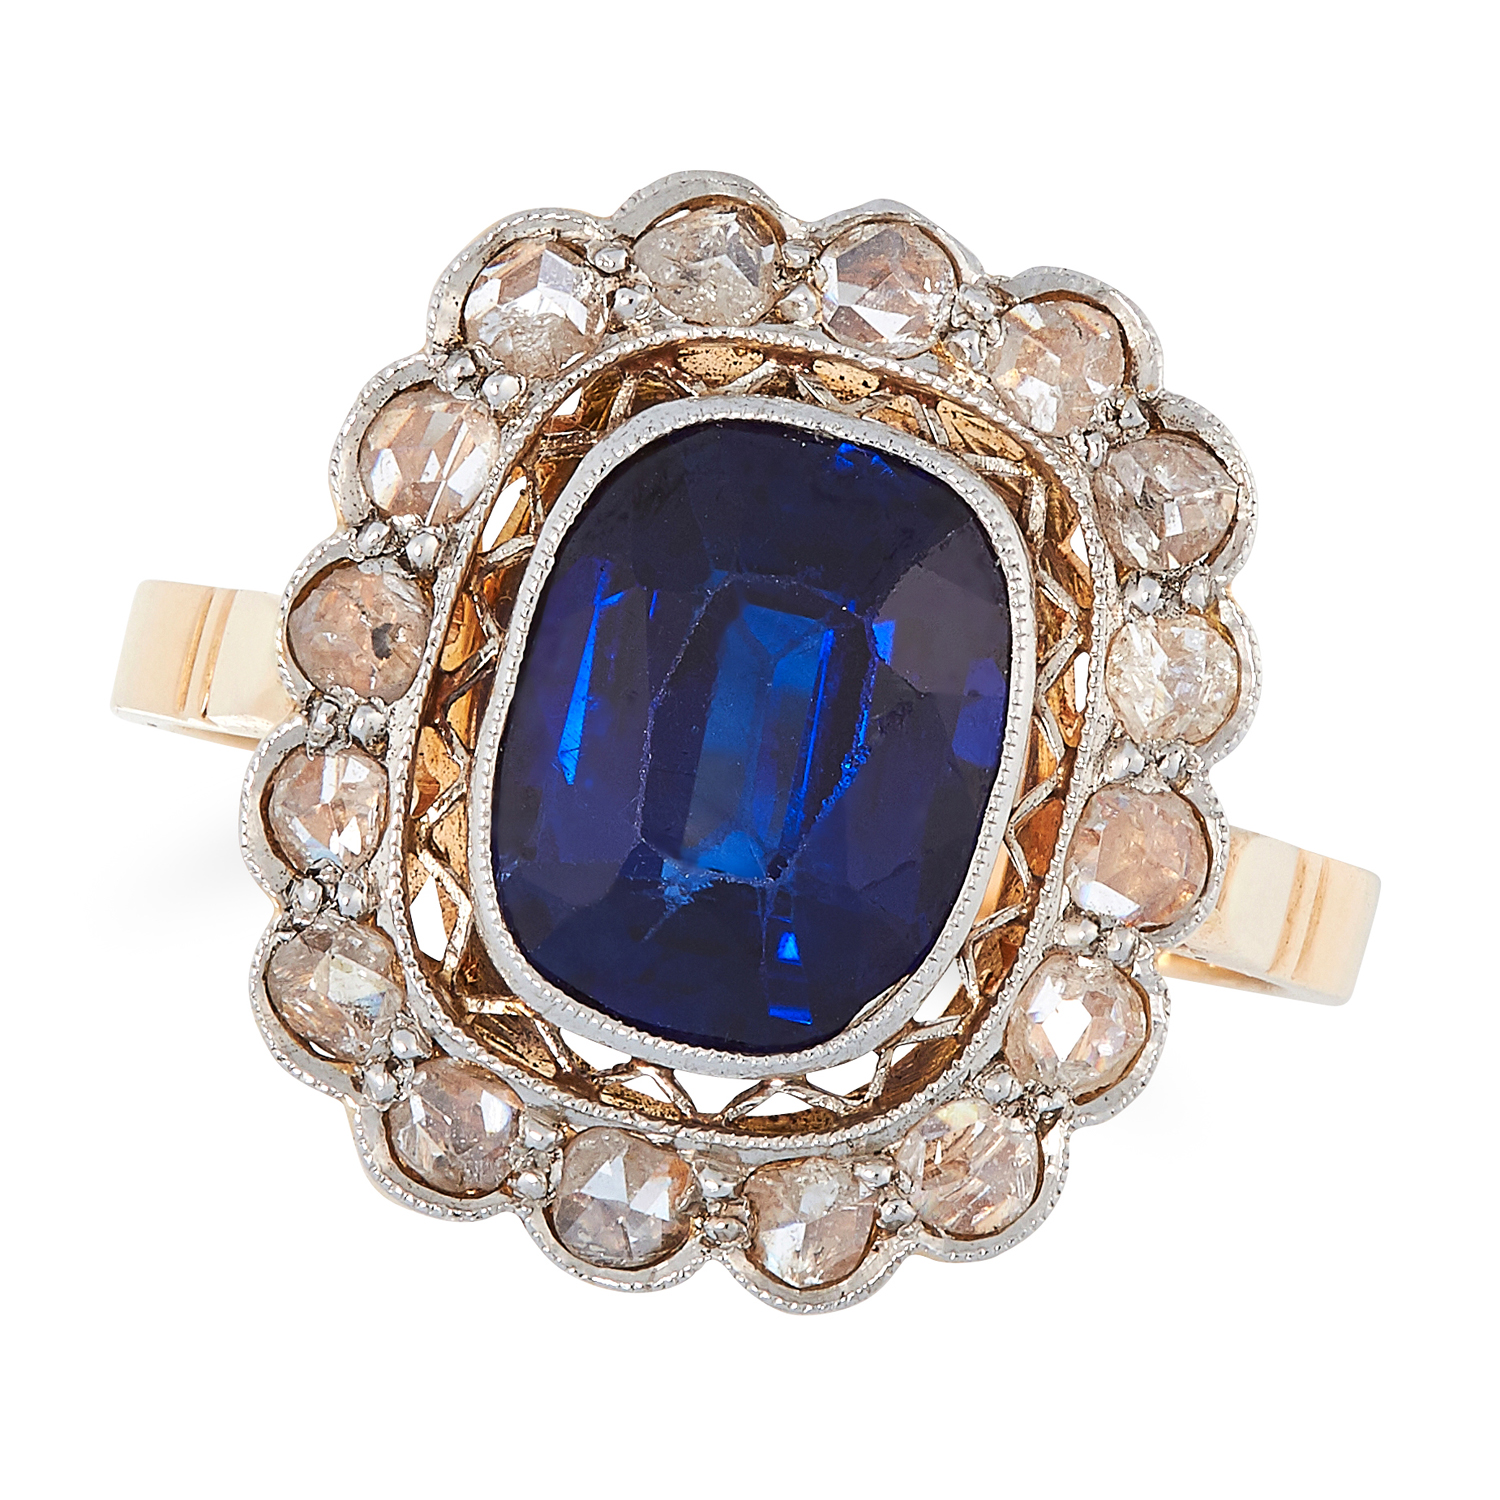 AN ANTIQUE SYNTHETIC SAPPHIRE AND DIAMOND CLUSTER RING, EARLY 20TH CENTURY in yellow gold, set